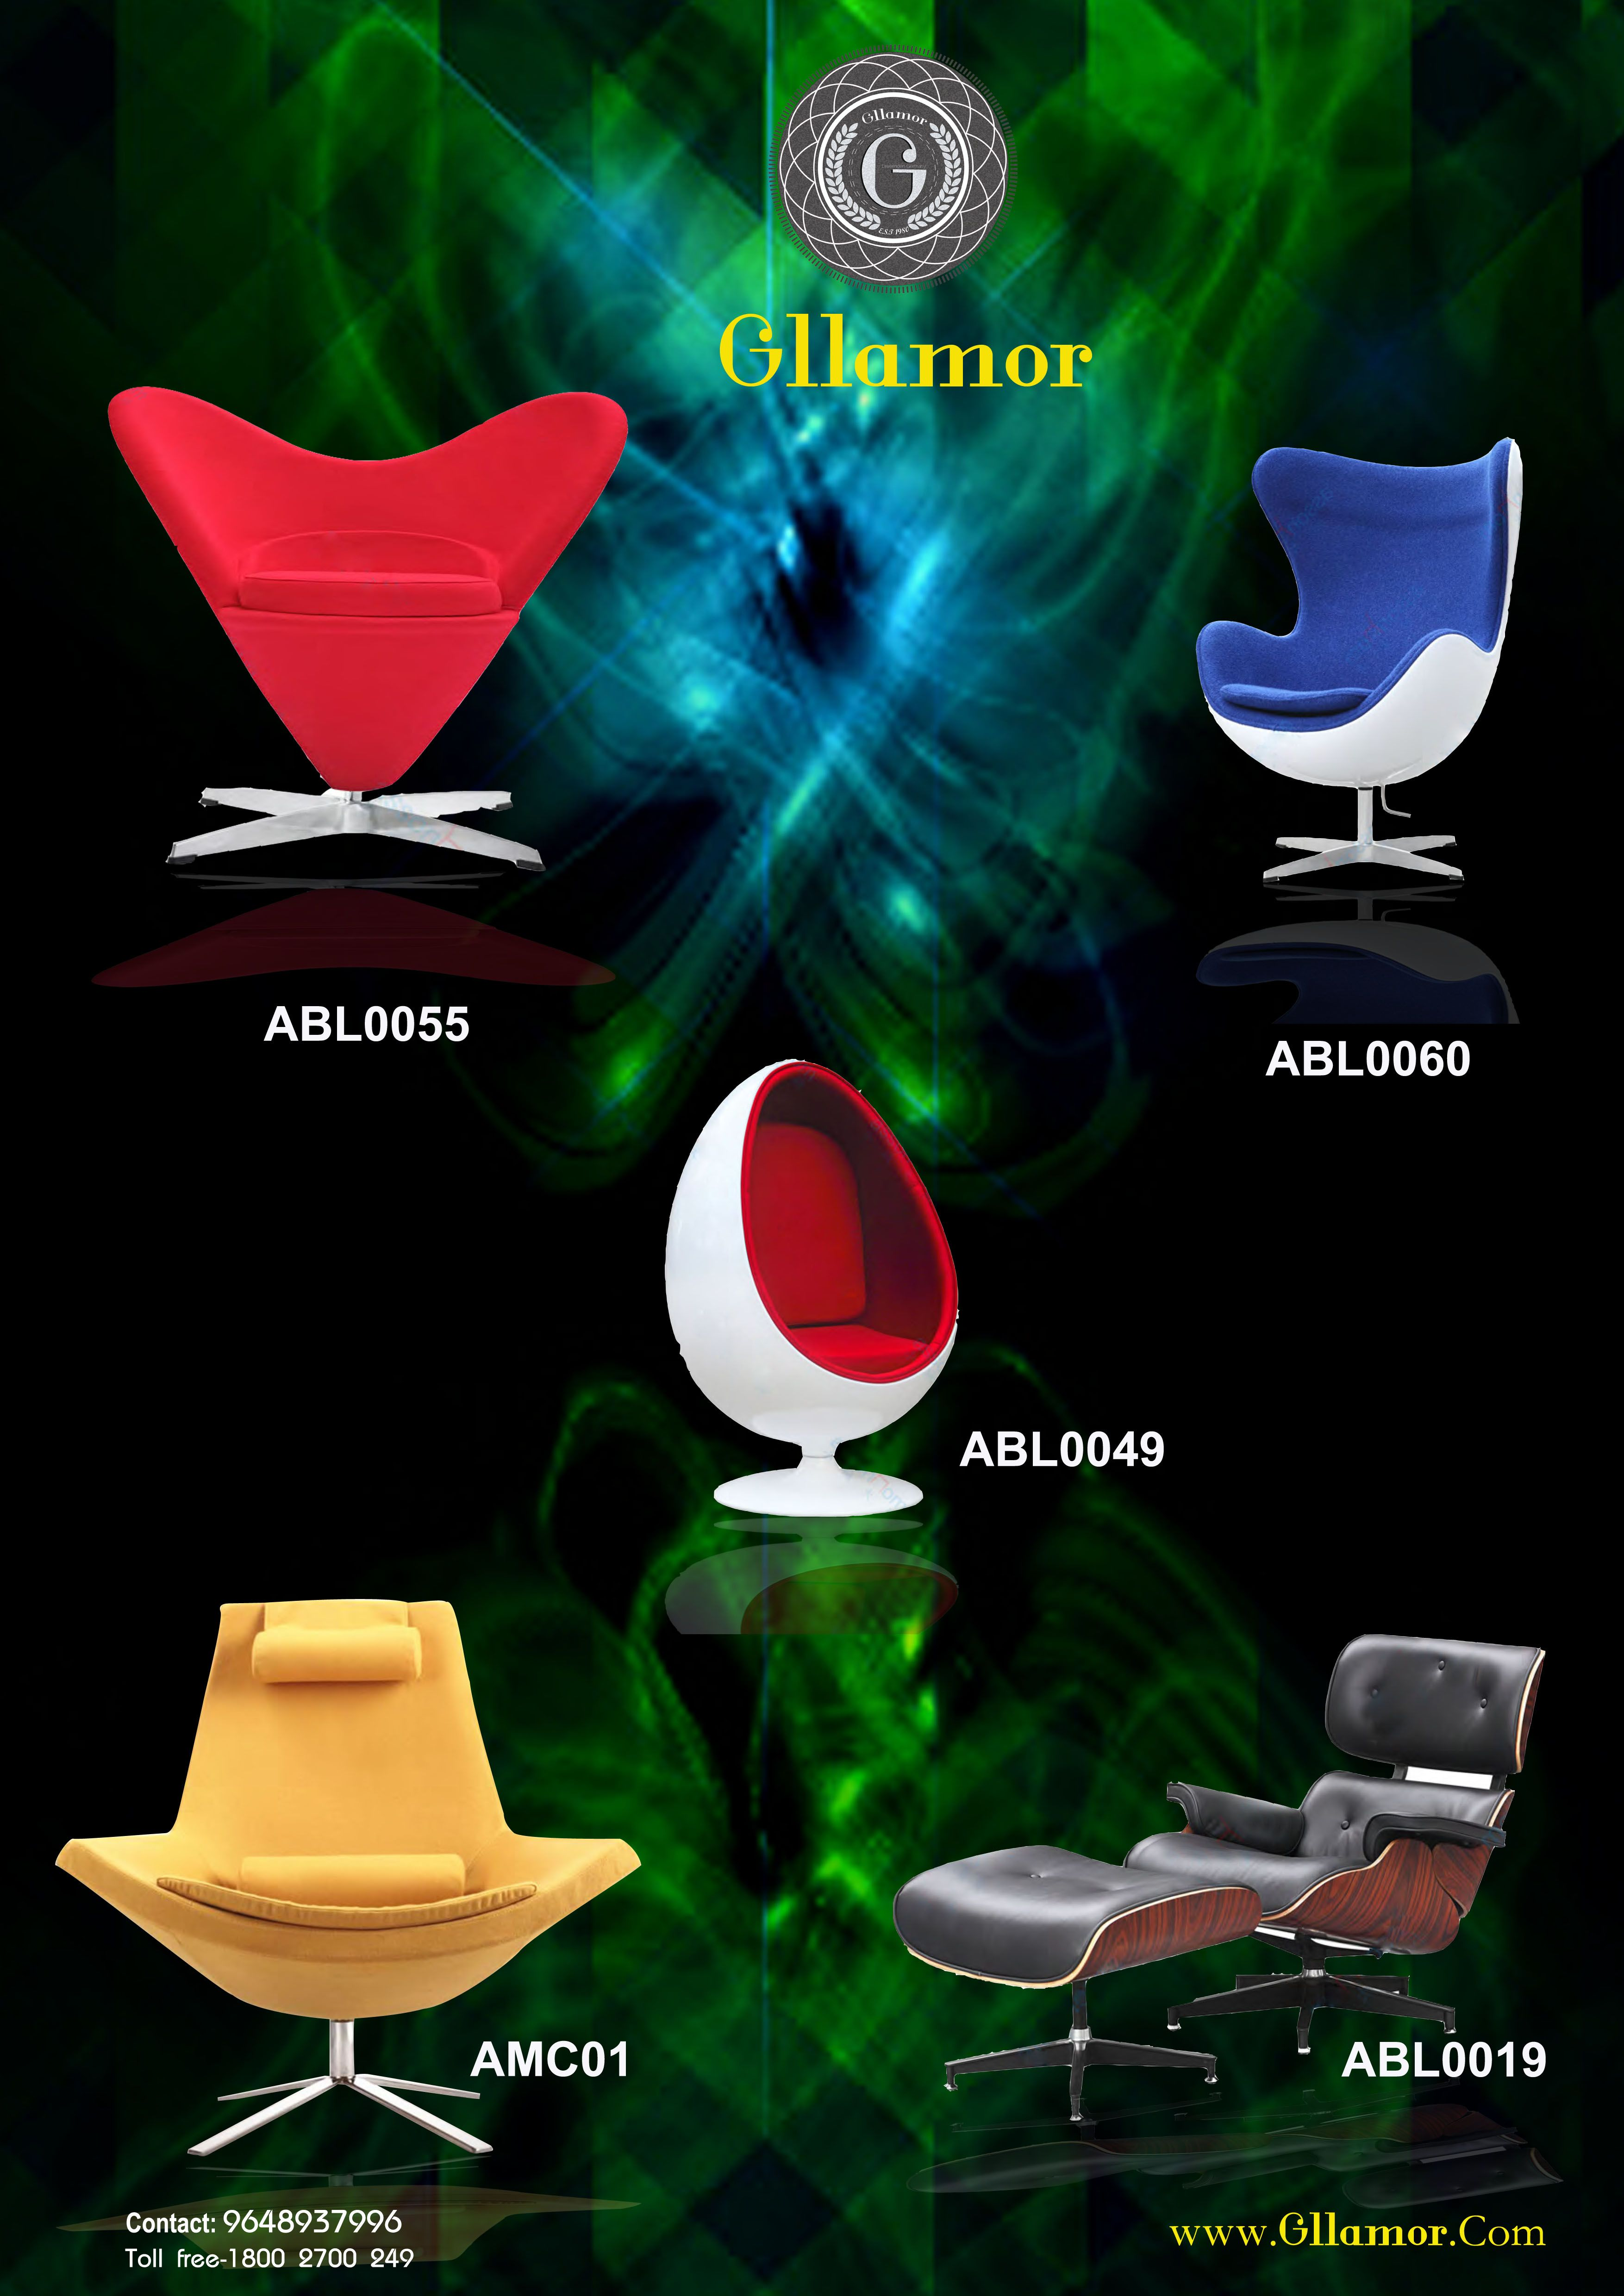 Desire Chairs With Attractive Designs Contact For More Details Divya 9648937996 Whatsapp Www Gllamor Com Novelty Lamp